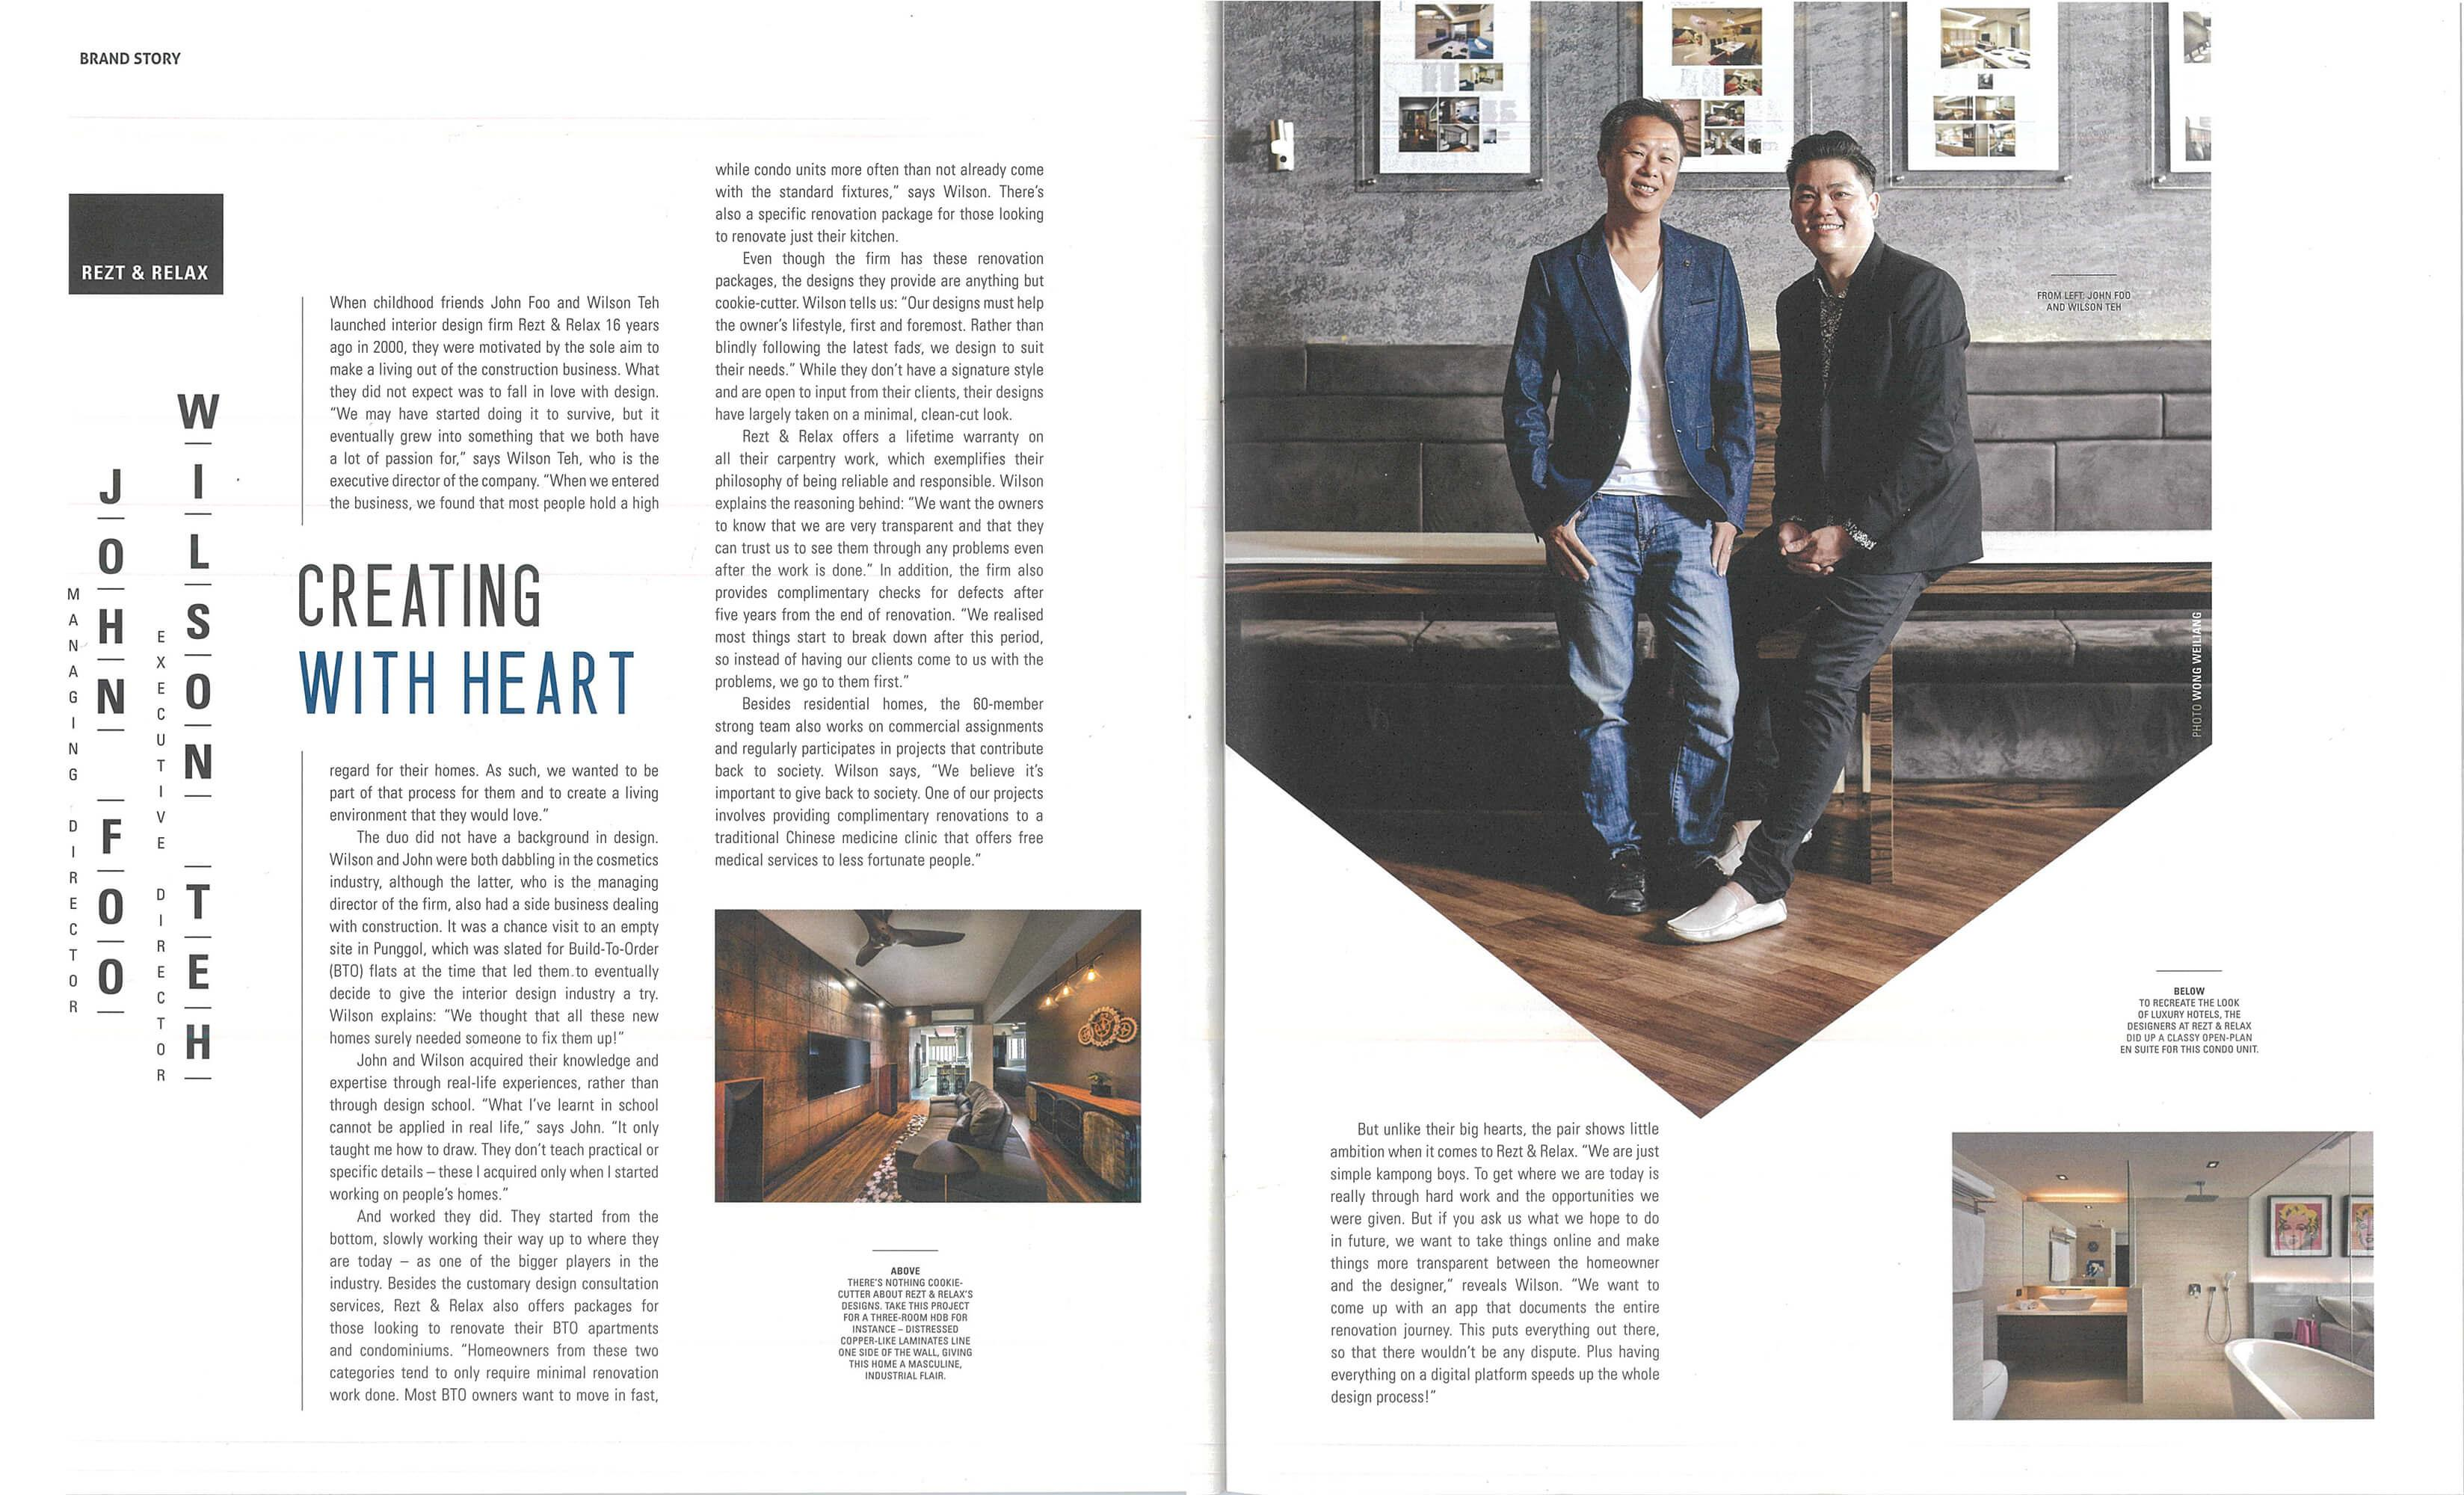 Brand Story Interview on Square Rooms magazine